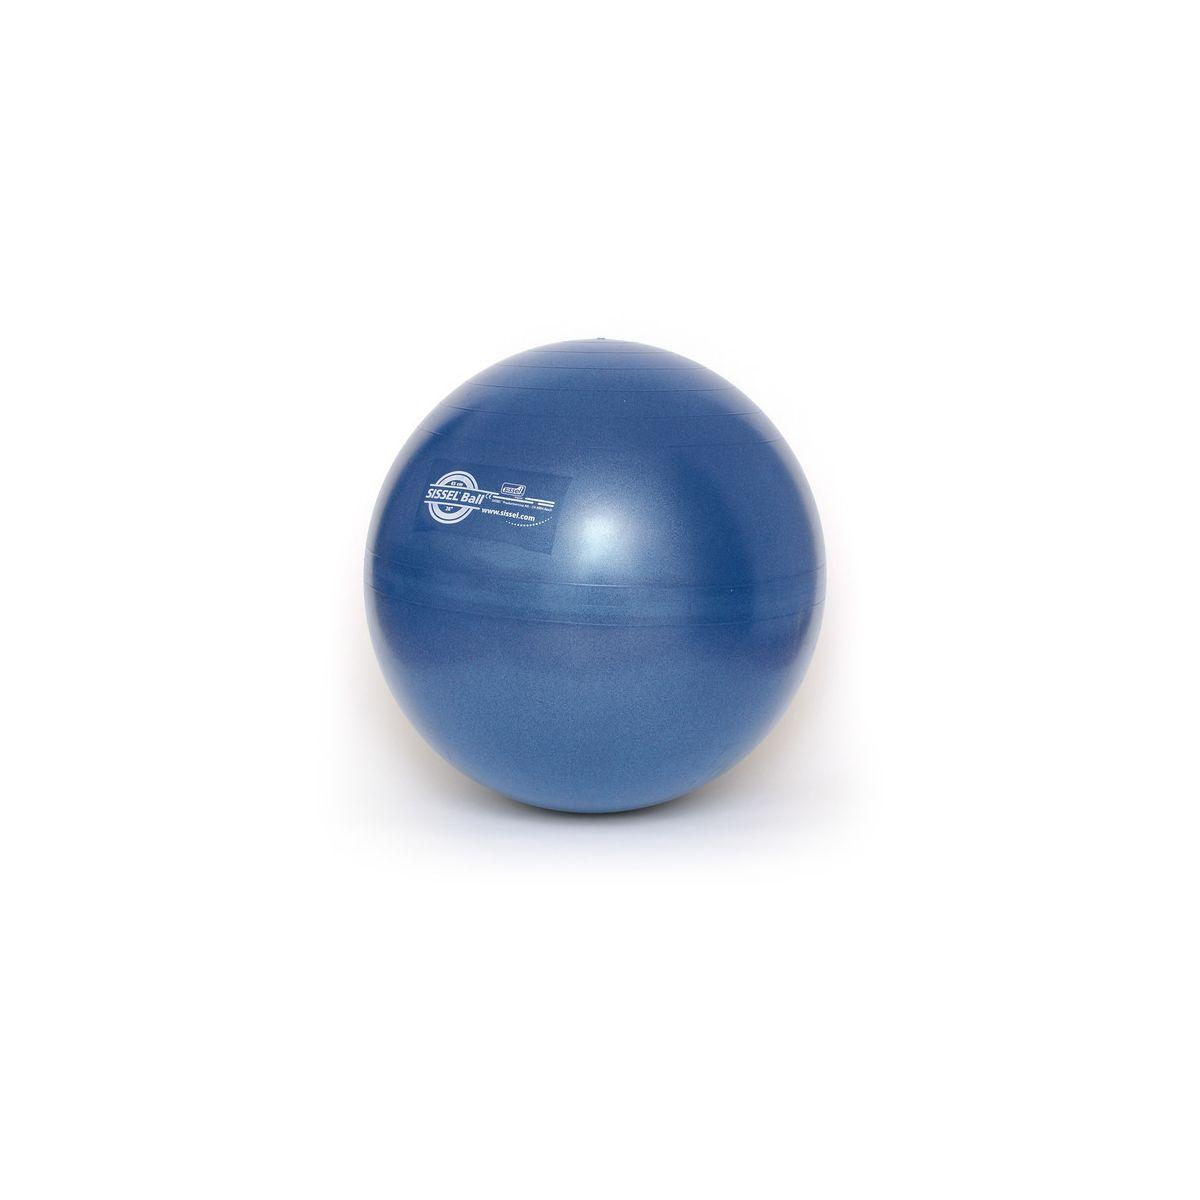 Ballon sissel ball 75cm (photo)